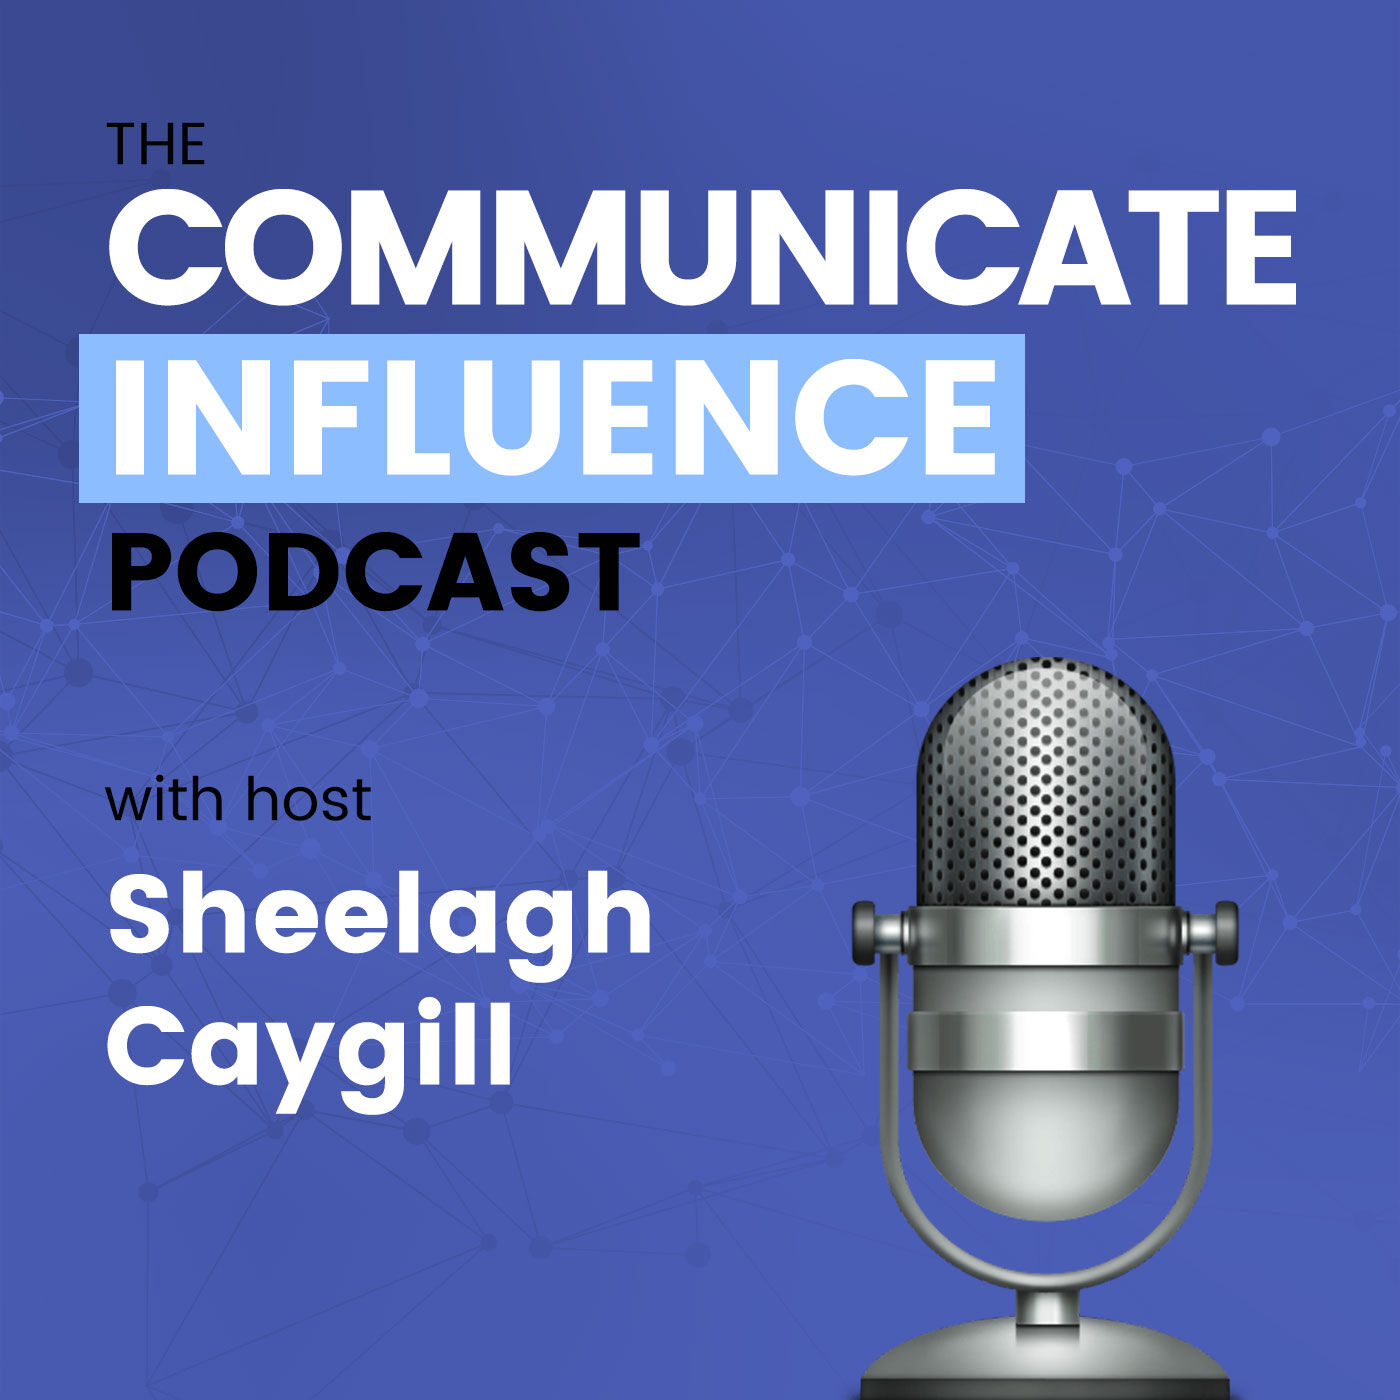 The Communicate Influence Podcast